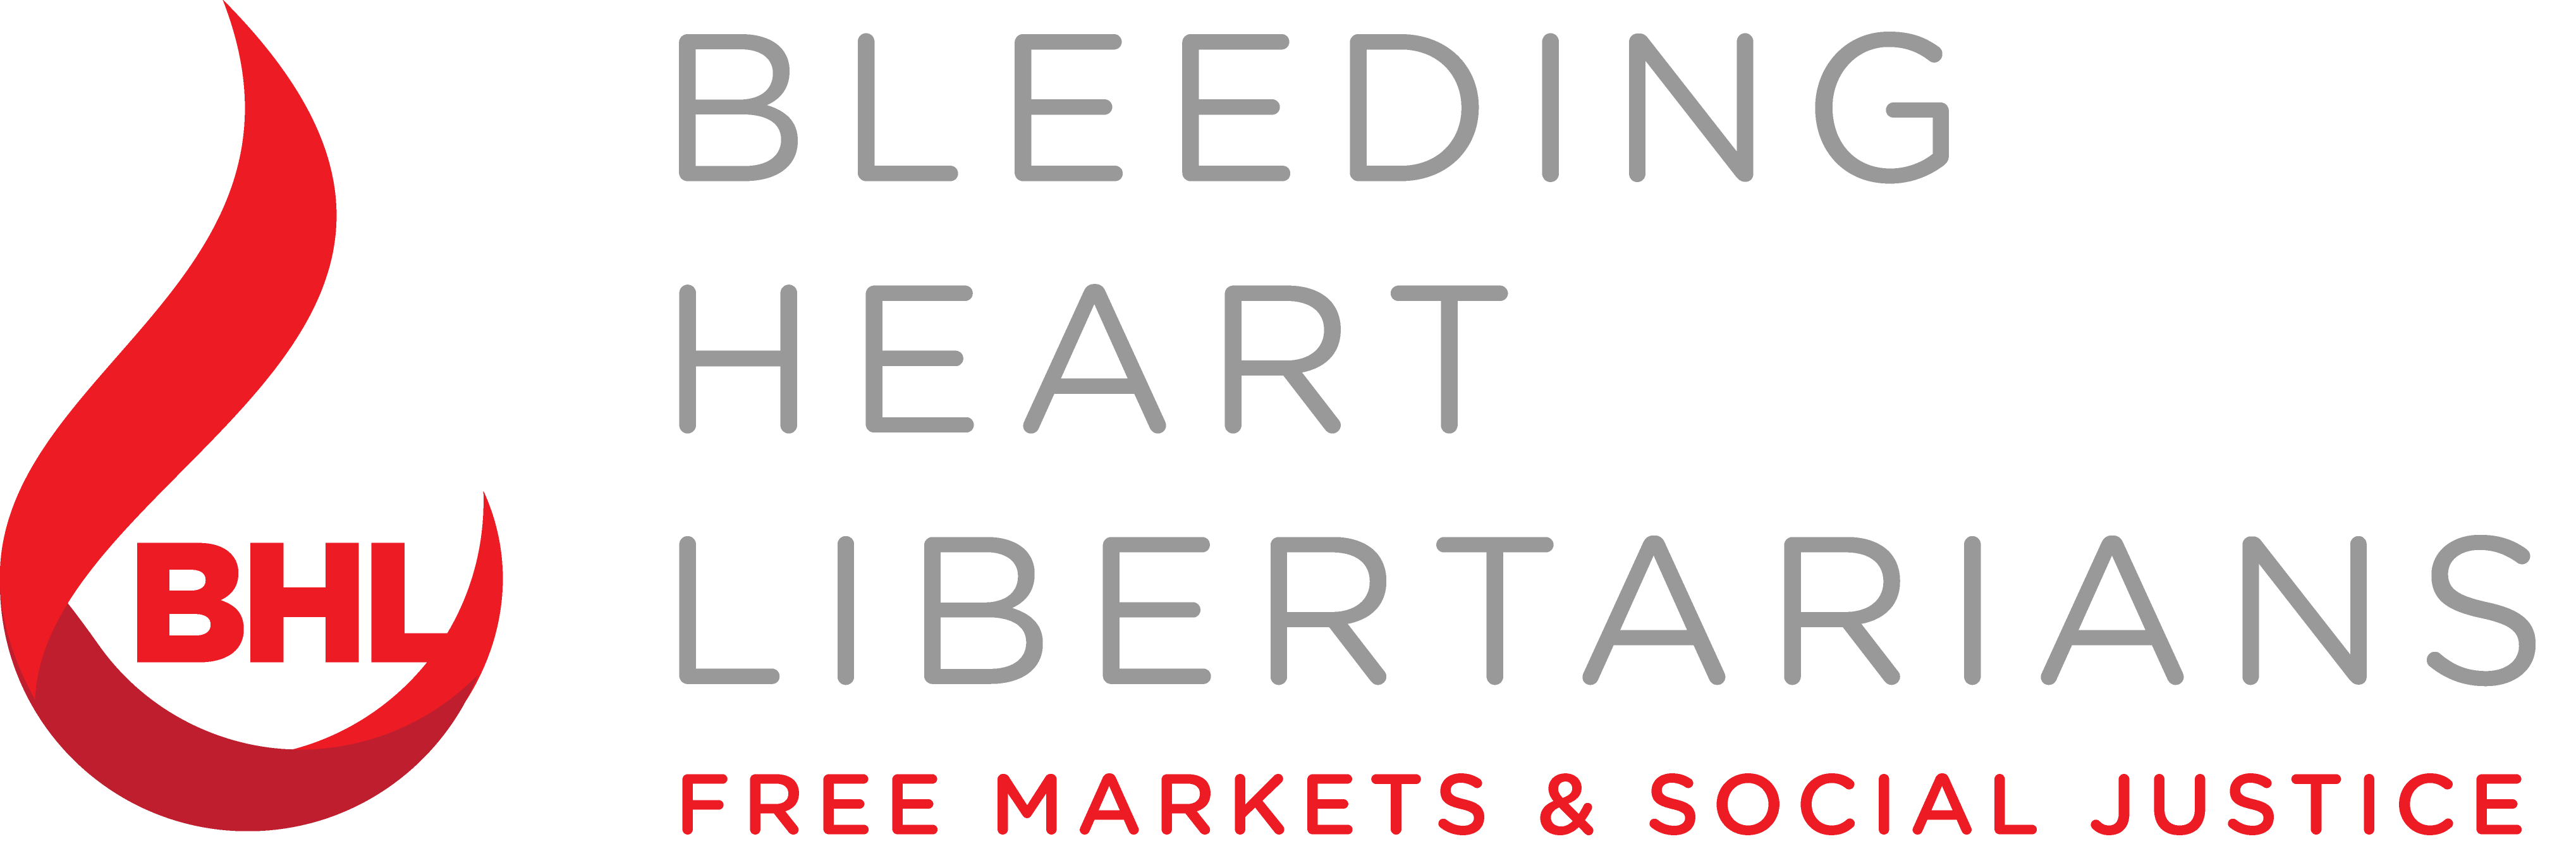 Bleeding Heart Libertarians